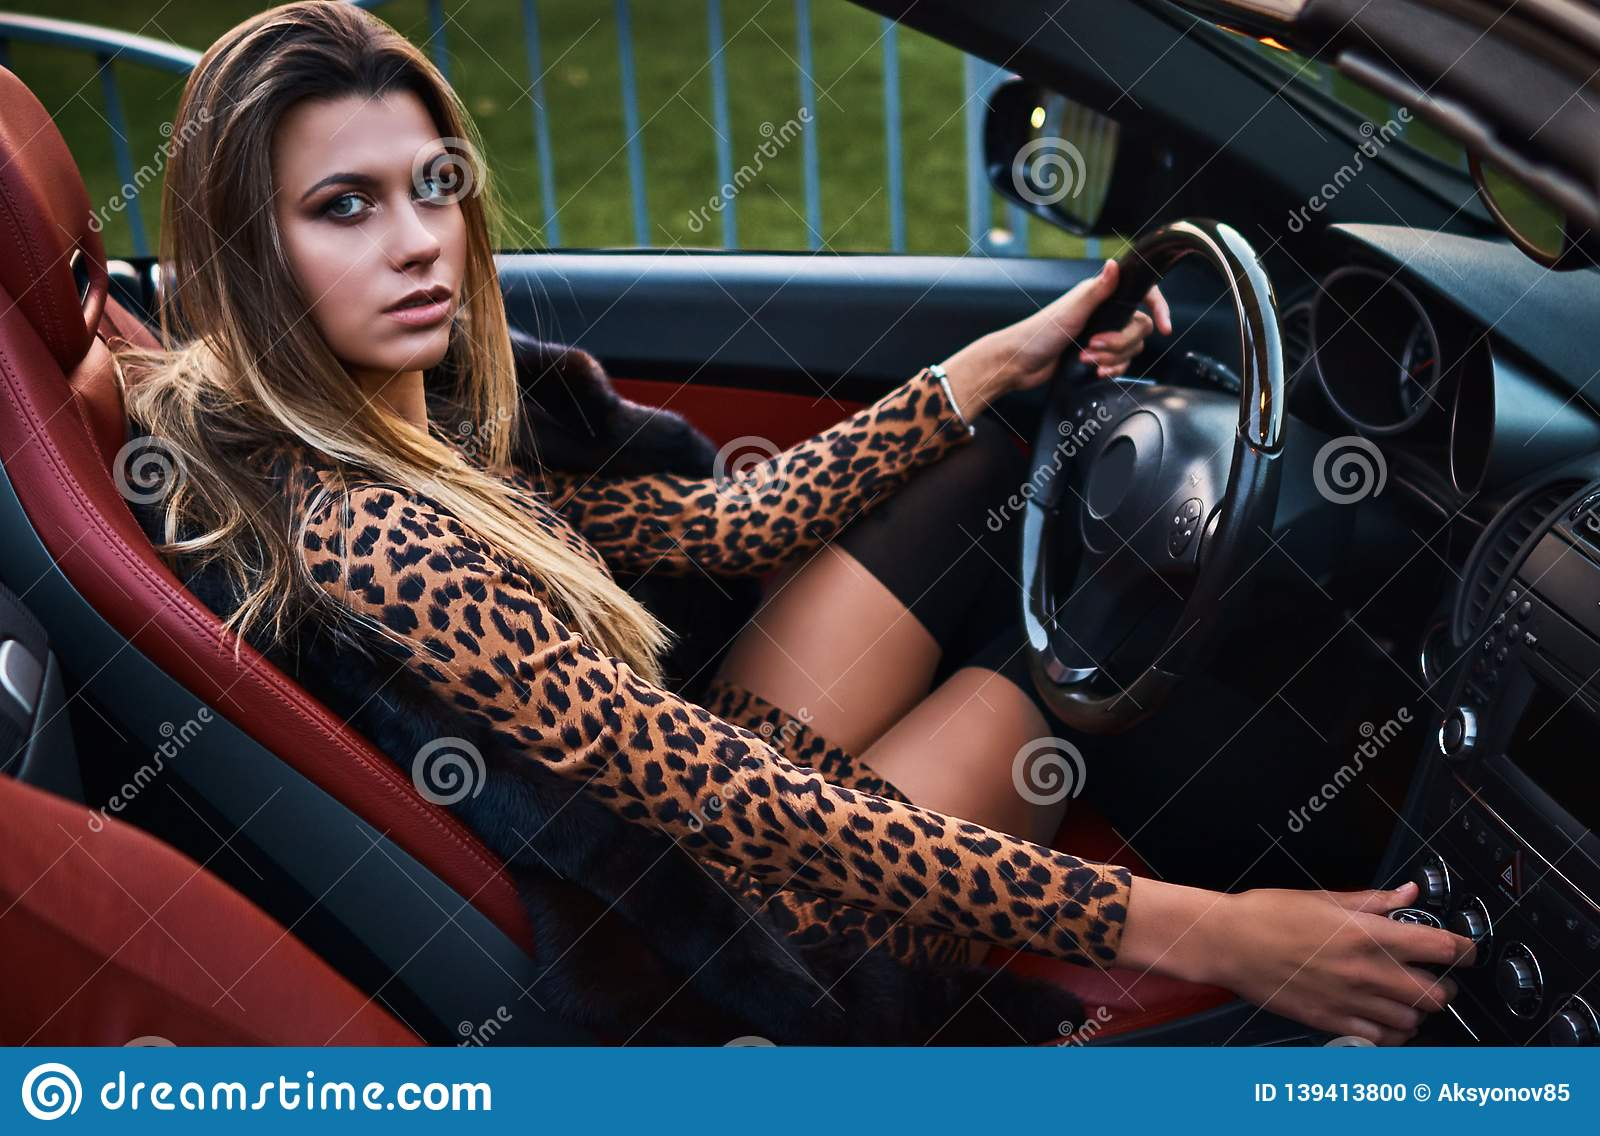 Sports Car Blonde stock photo. Image of alluring, glamour